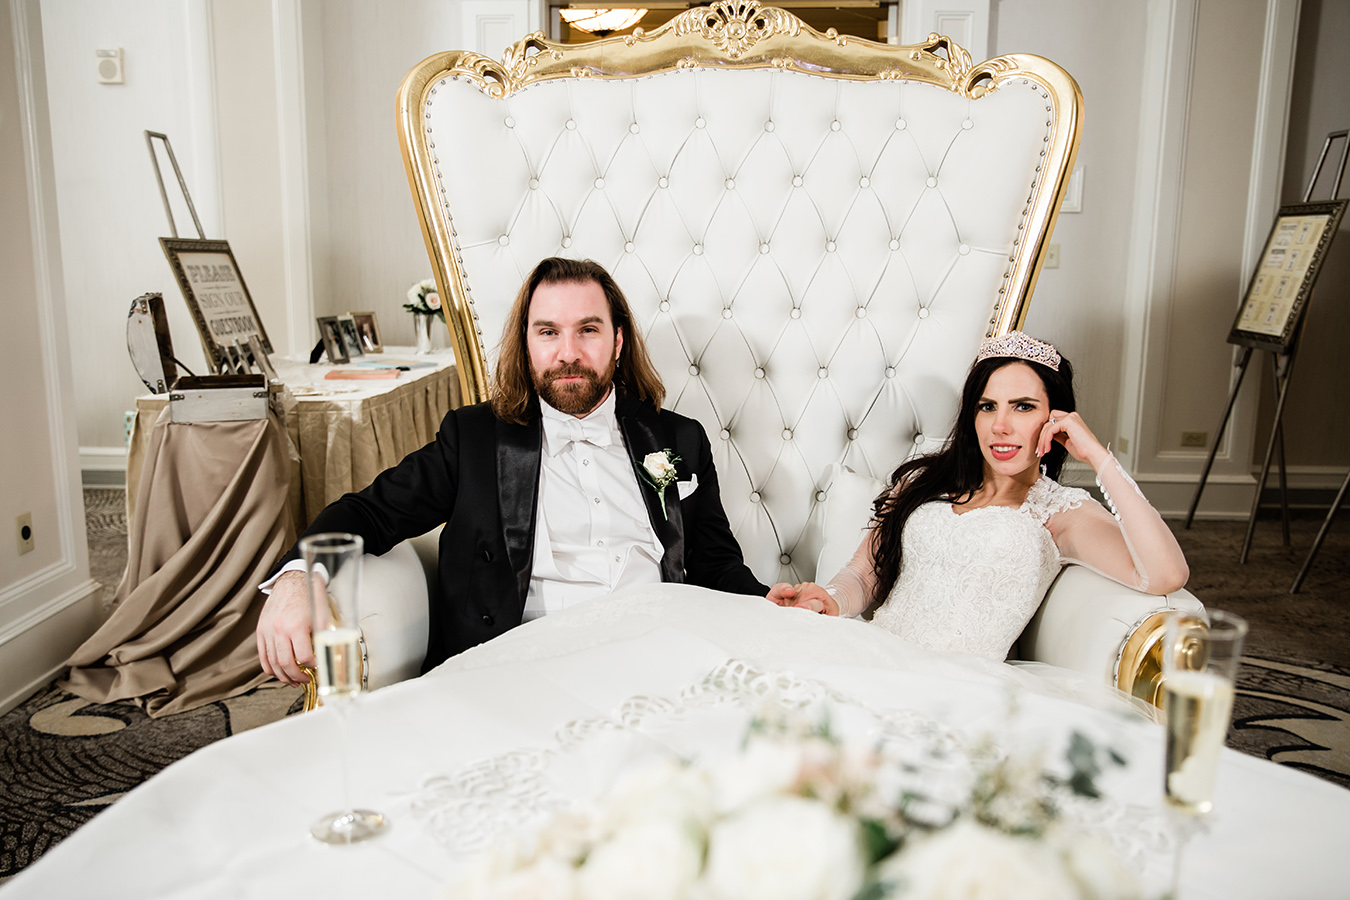 Jess and Rhett's sweetheart table featured an elegant white and gold Baroque throne loveseat from ELEMENT.